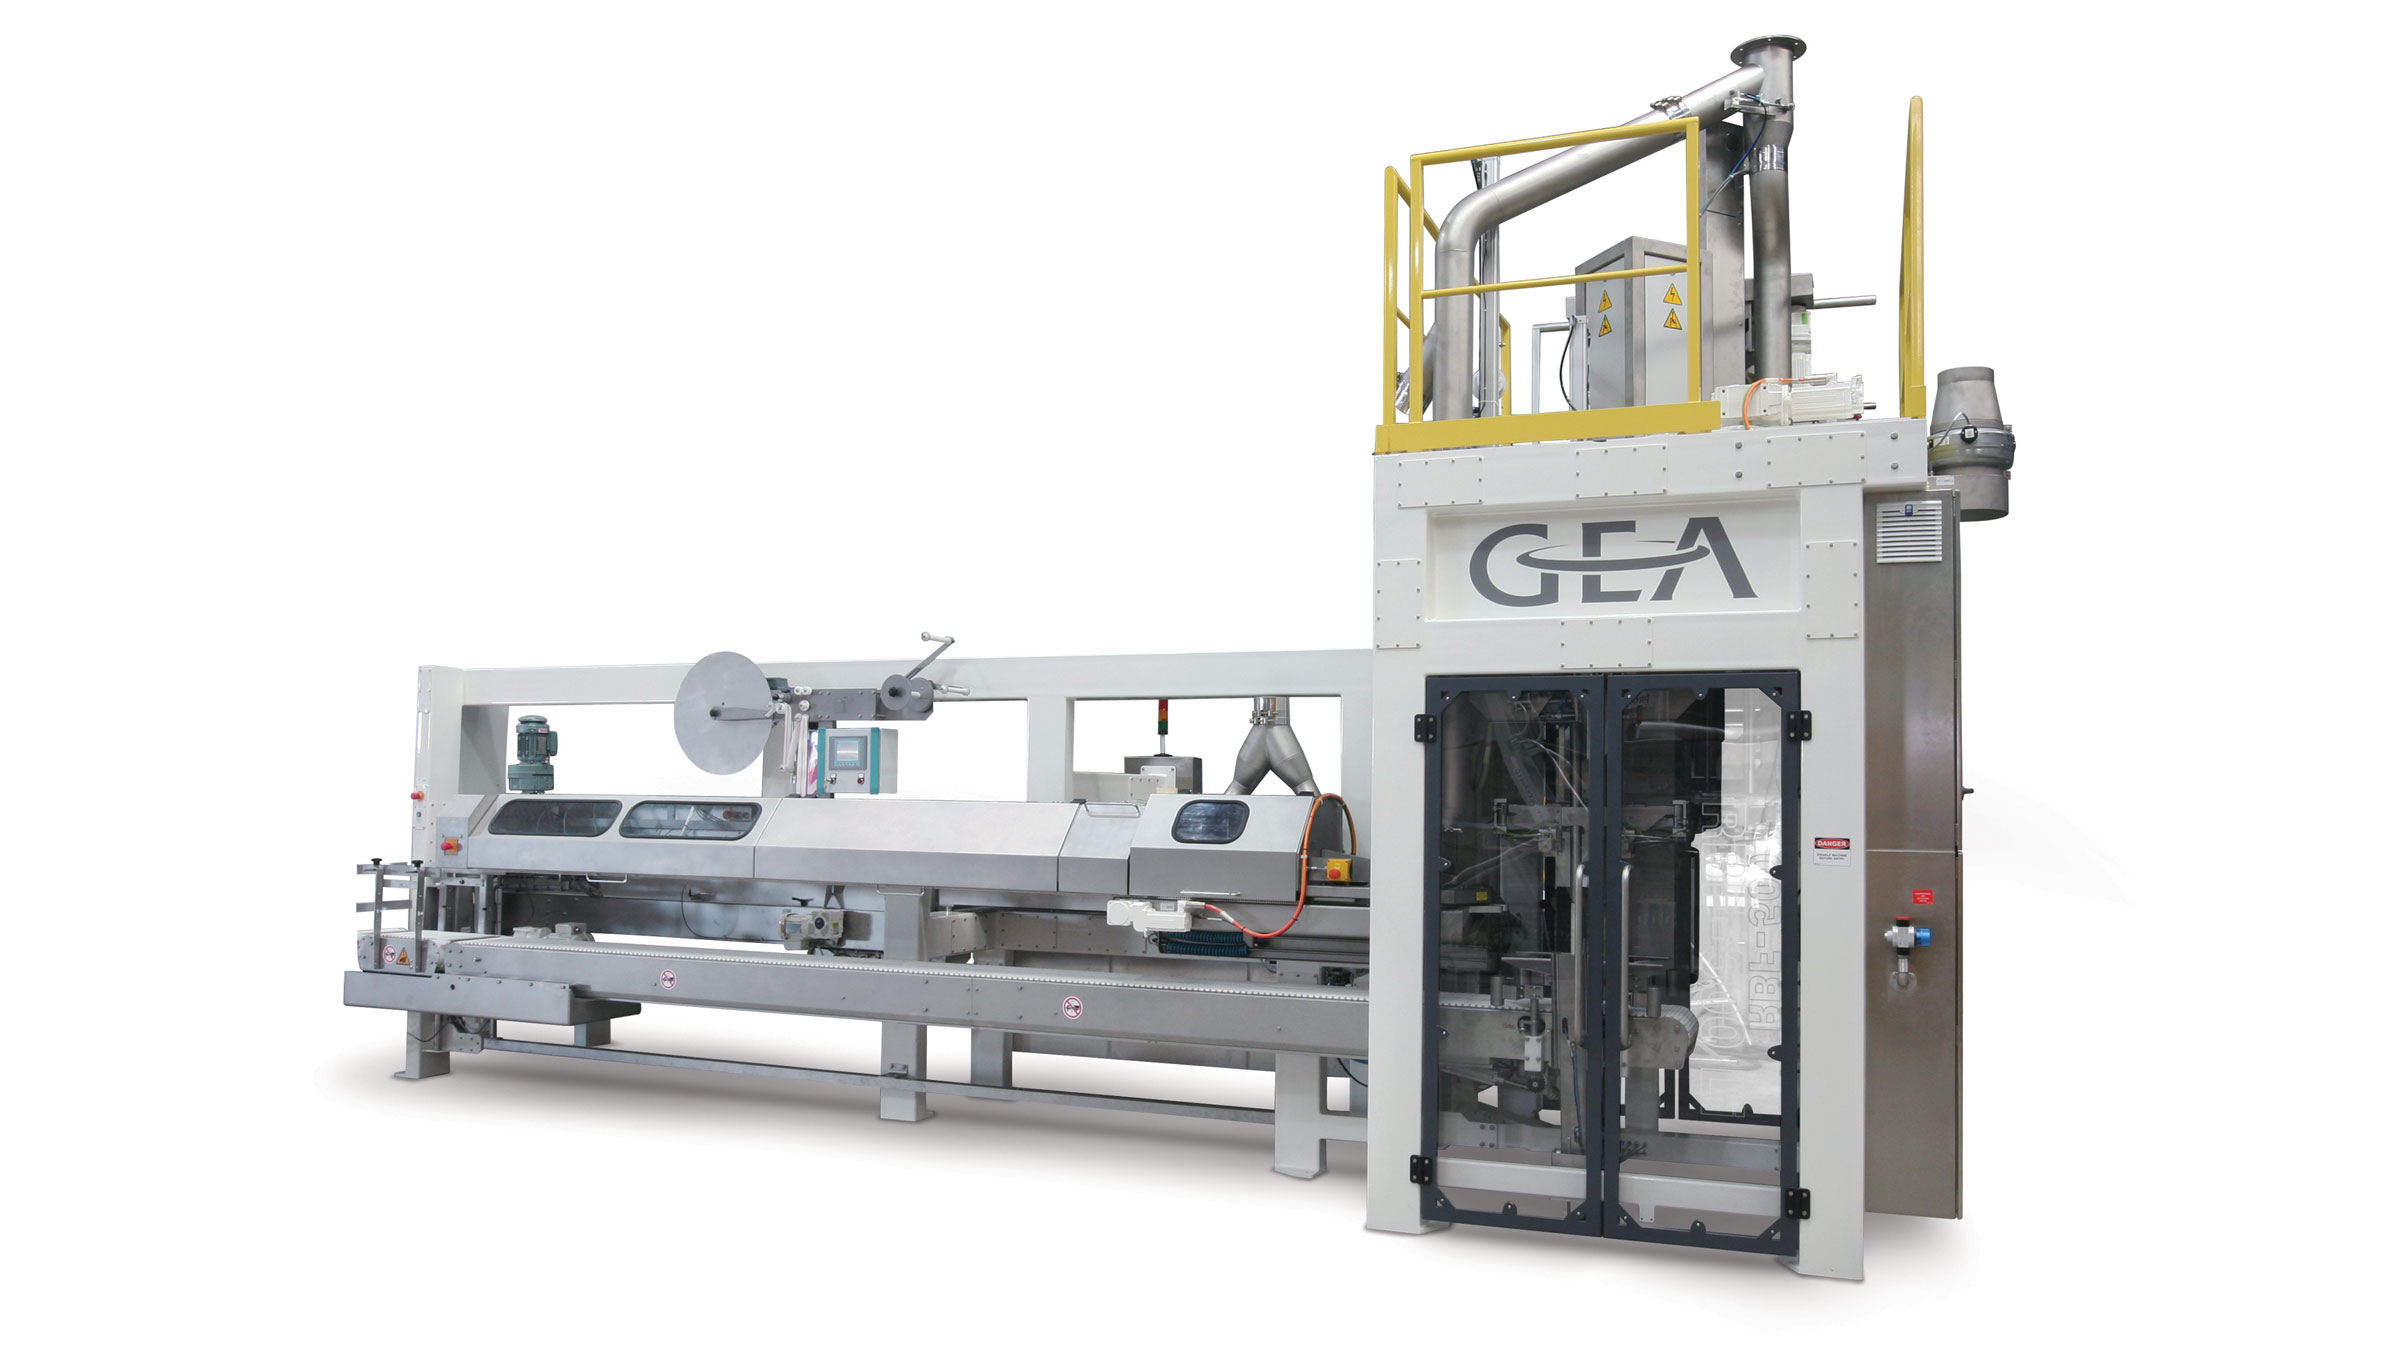 Micron Packing RBF 500LI Filler